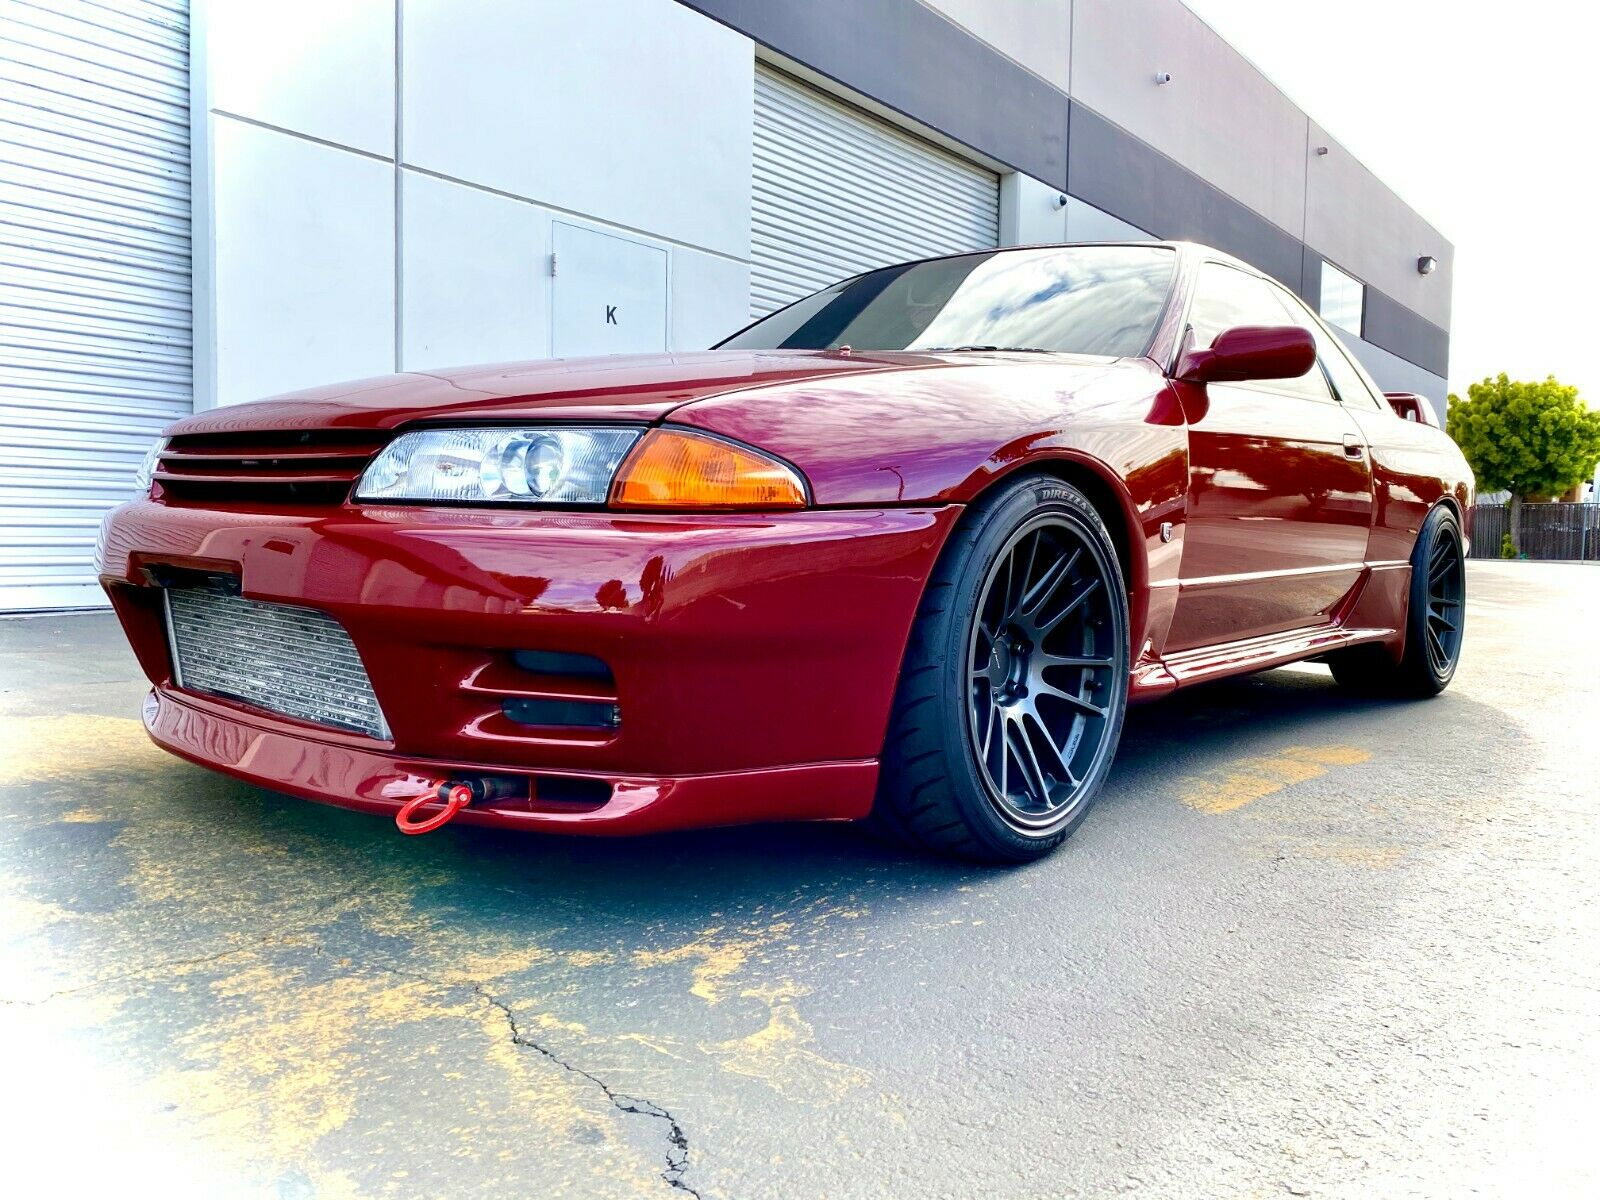 This 1994 Nissan GT-R Skyline is a stunner. But Godzilla is driven from the right side.